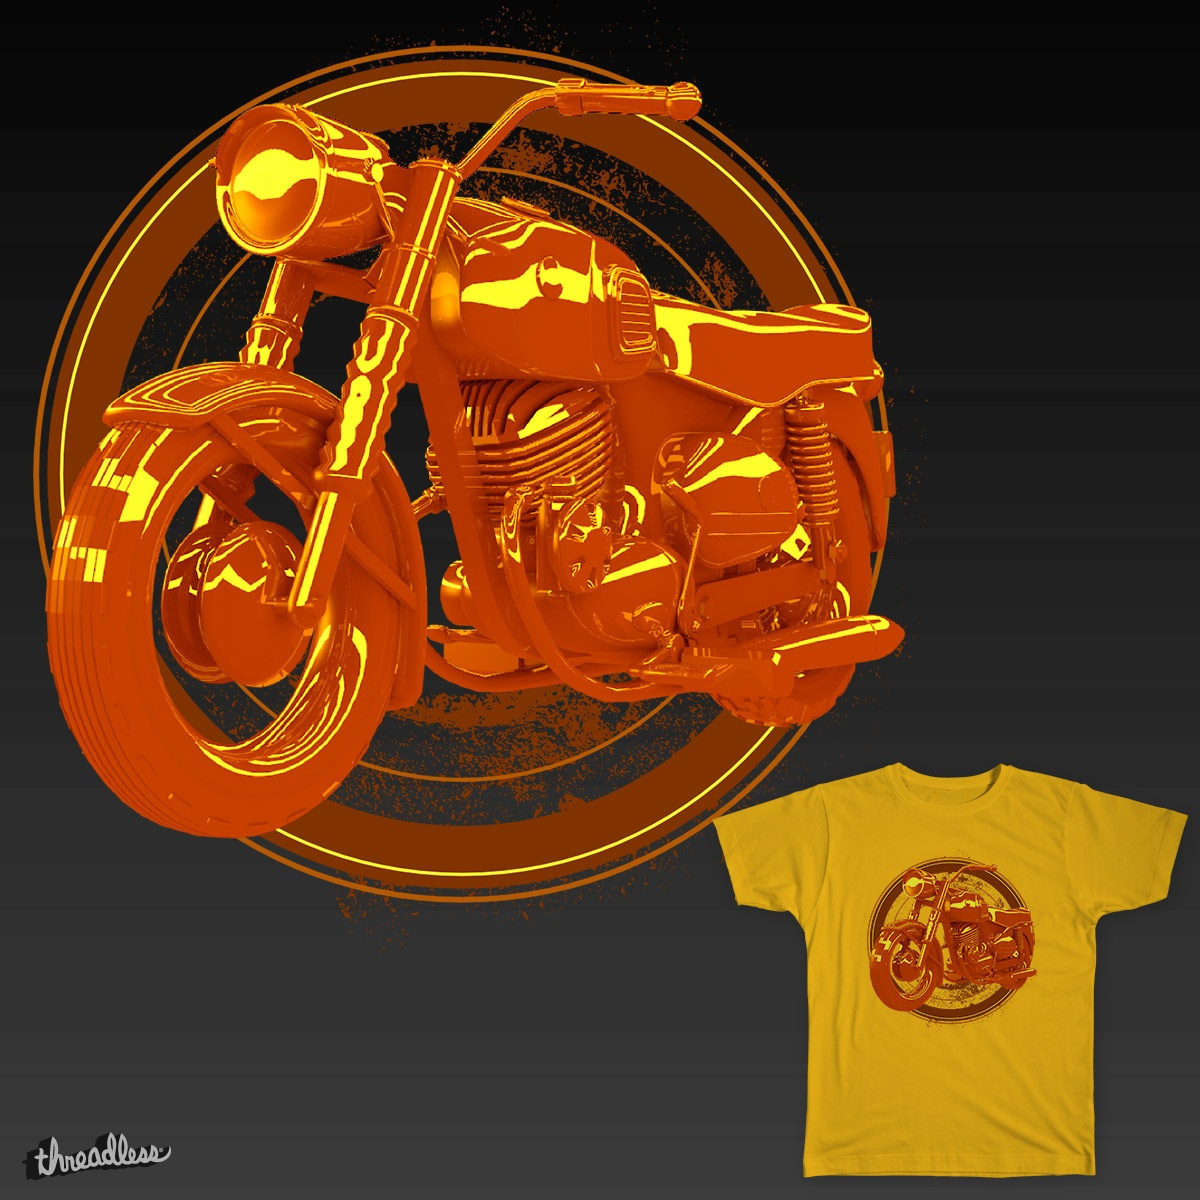 Brown Motorcycle, a cool t-shirt design